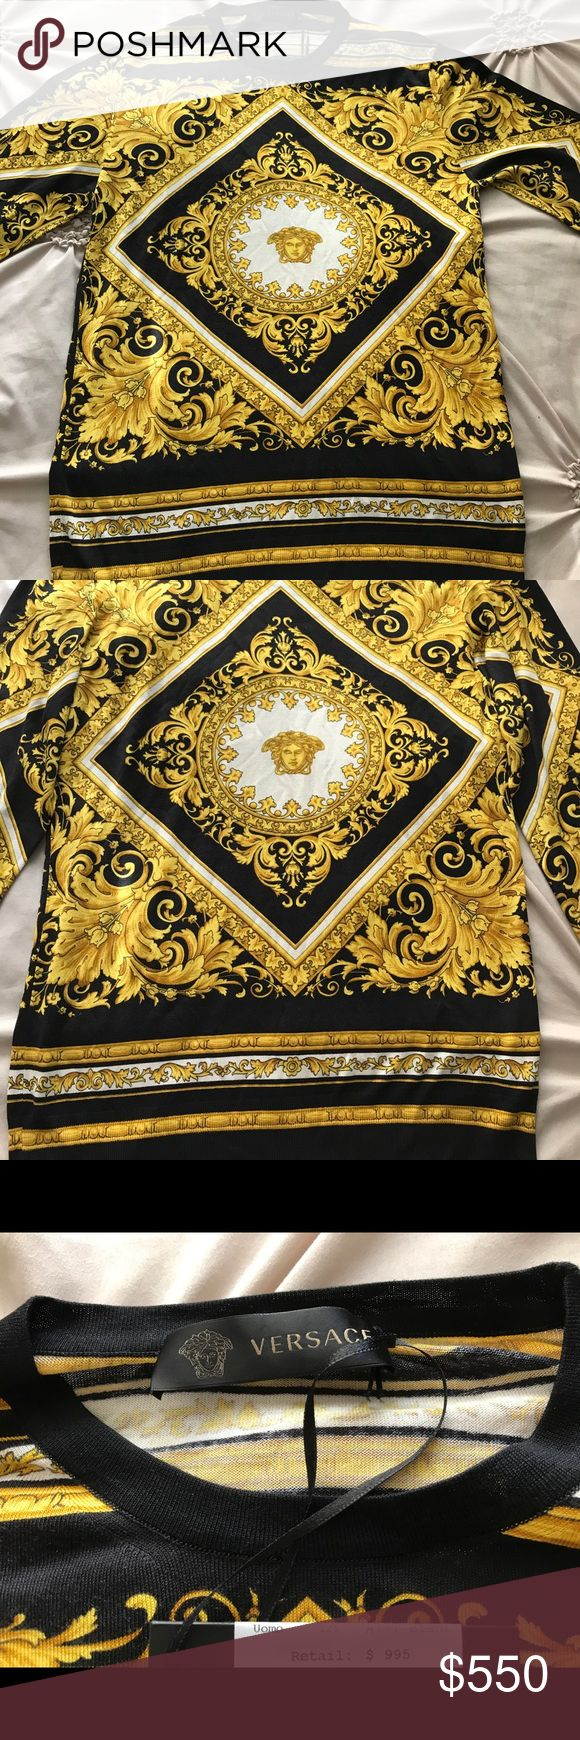 NEW VERSACE SHIRT! SIGNATURE PATTERN! NEW WITH TAGS VERSACE SHIRT! UNBELIEVABLE QUALITY AND CRAFTSMANSHIP! THIS SHIRT RETAILS FOR OVER $1000. YOU WONT FIND AUTHENTIC CLASSIC SHIRTS LIKE THIS AROUND. KEY WORD BEING AUTHENTIC 😉                              Made In Italy!!!!                                                       DRESS LIKE A CELEBRITY FOR LESS!!! Versace Shirts Tees - Long Sleeve